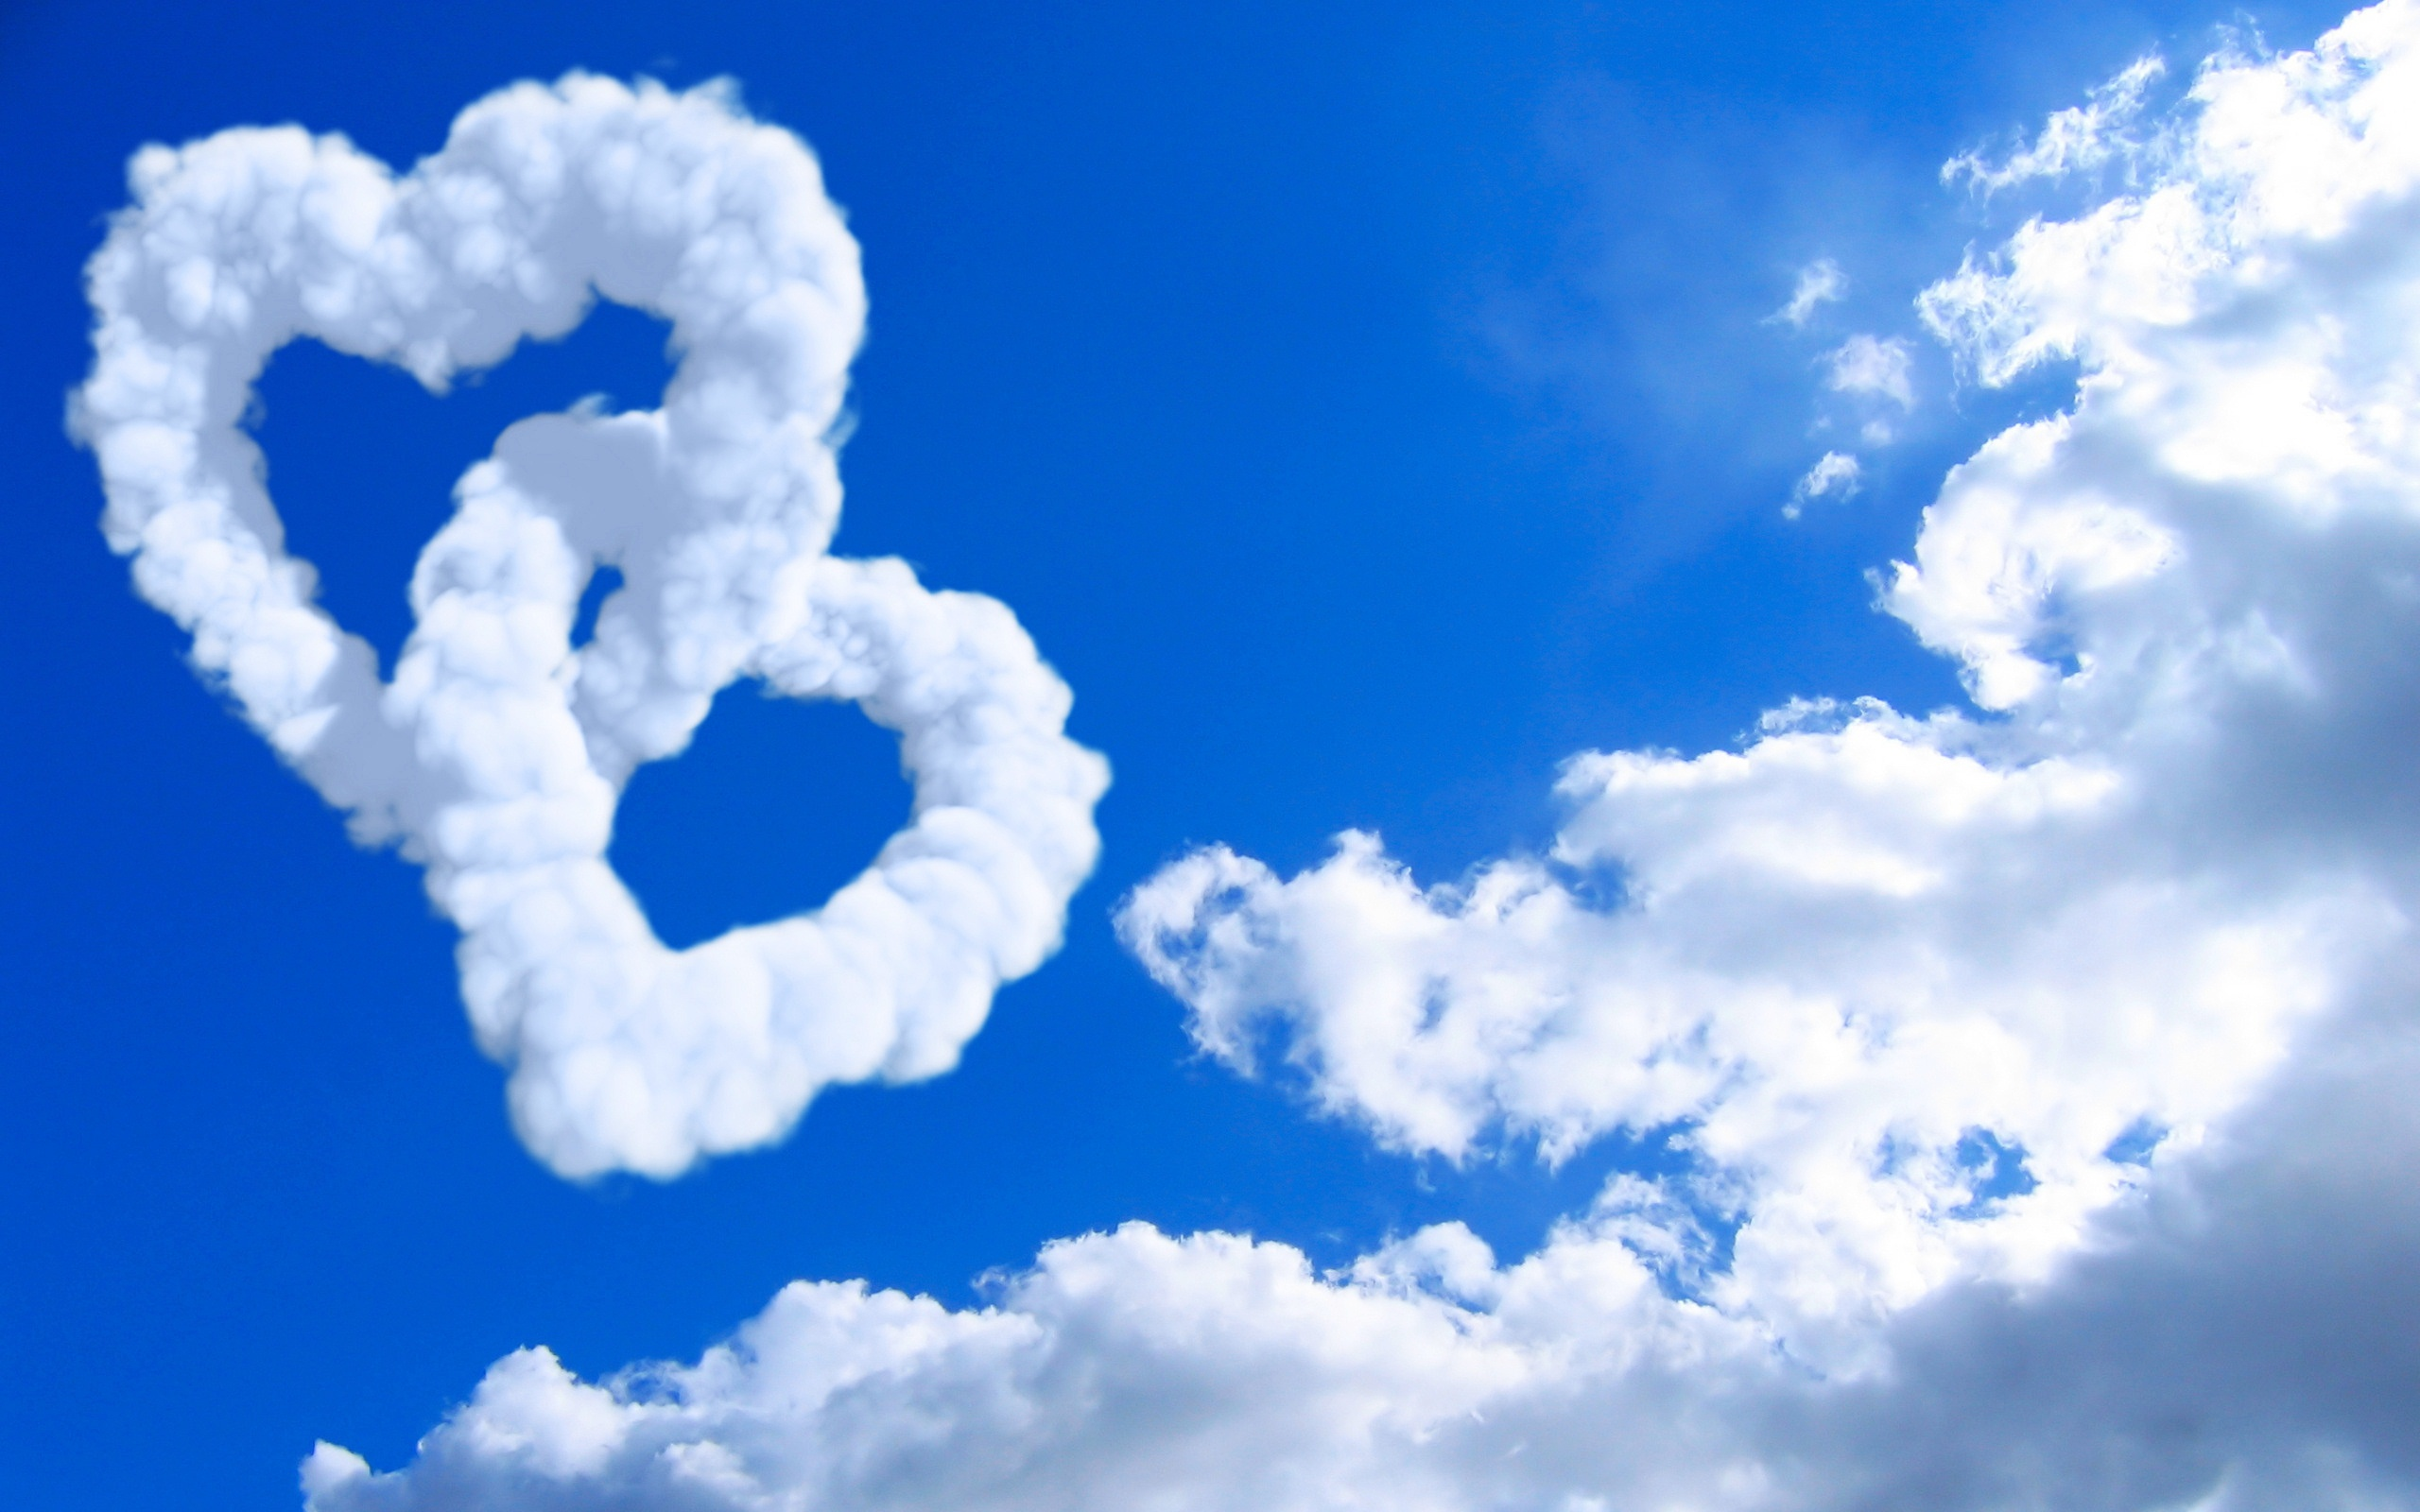 wallpapers love wallpapers hearts in clouds wallpapers hearts in 2560x1600